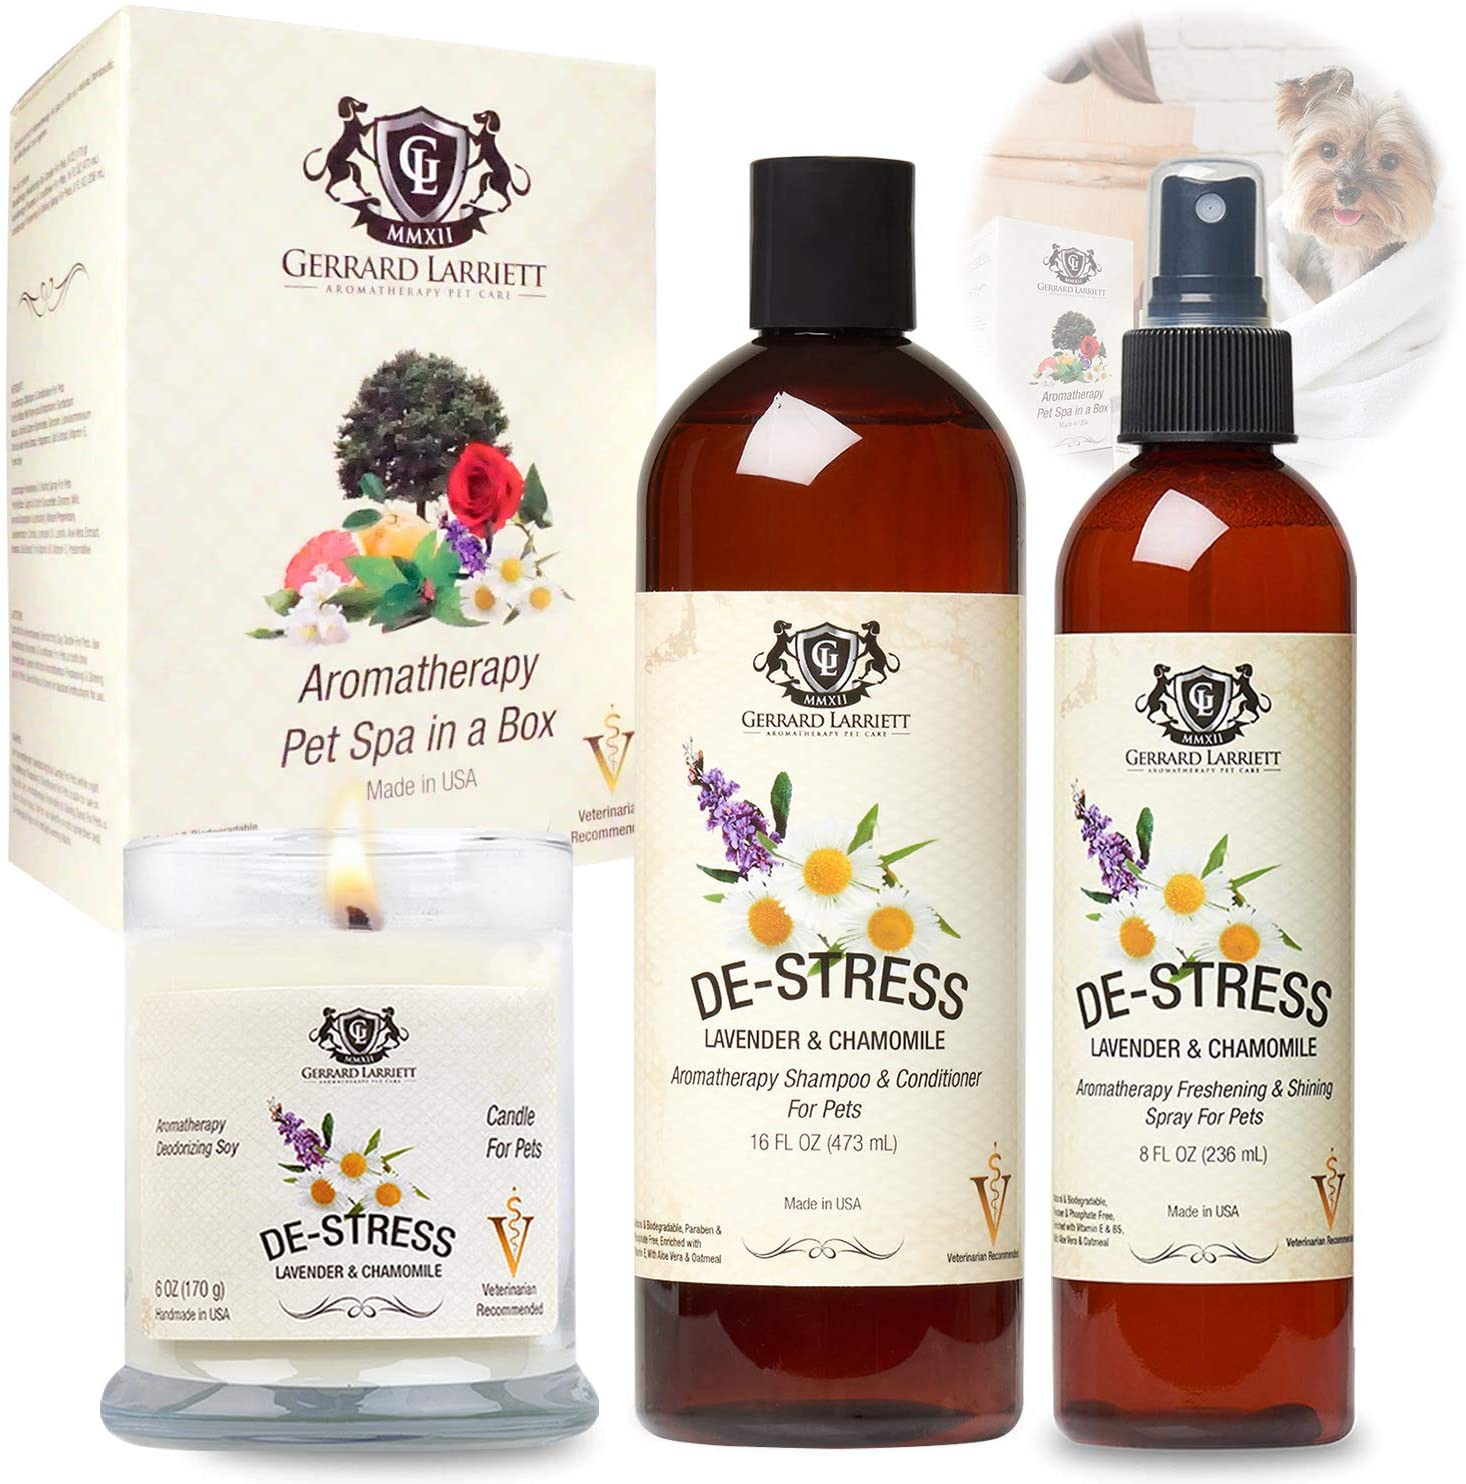 Aromatherapy Pet Spa in a Box Dog Shampoo, Dog Grooming Spray, Candle Scented Animal Lover Gift Set & Pet Odor Eliminator